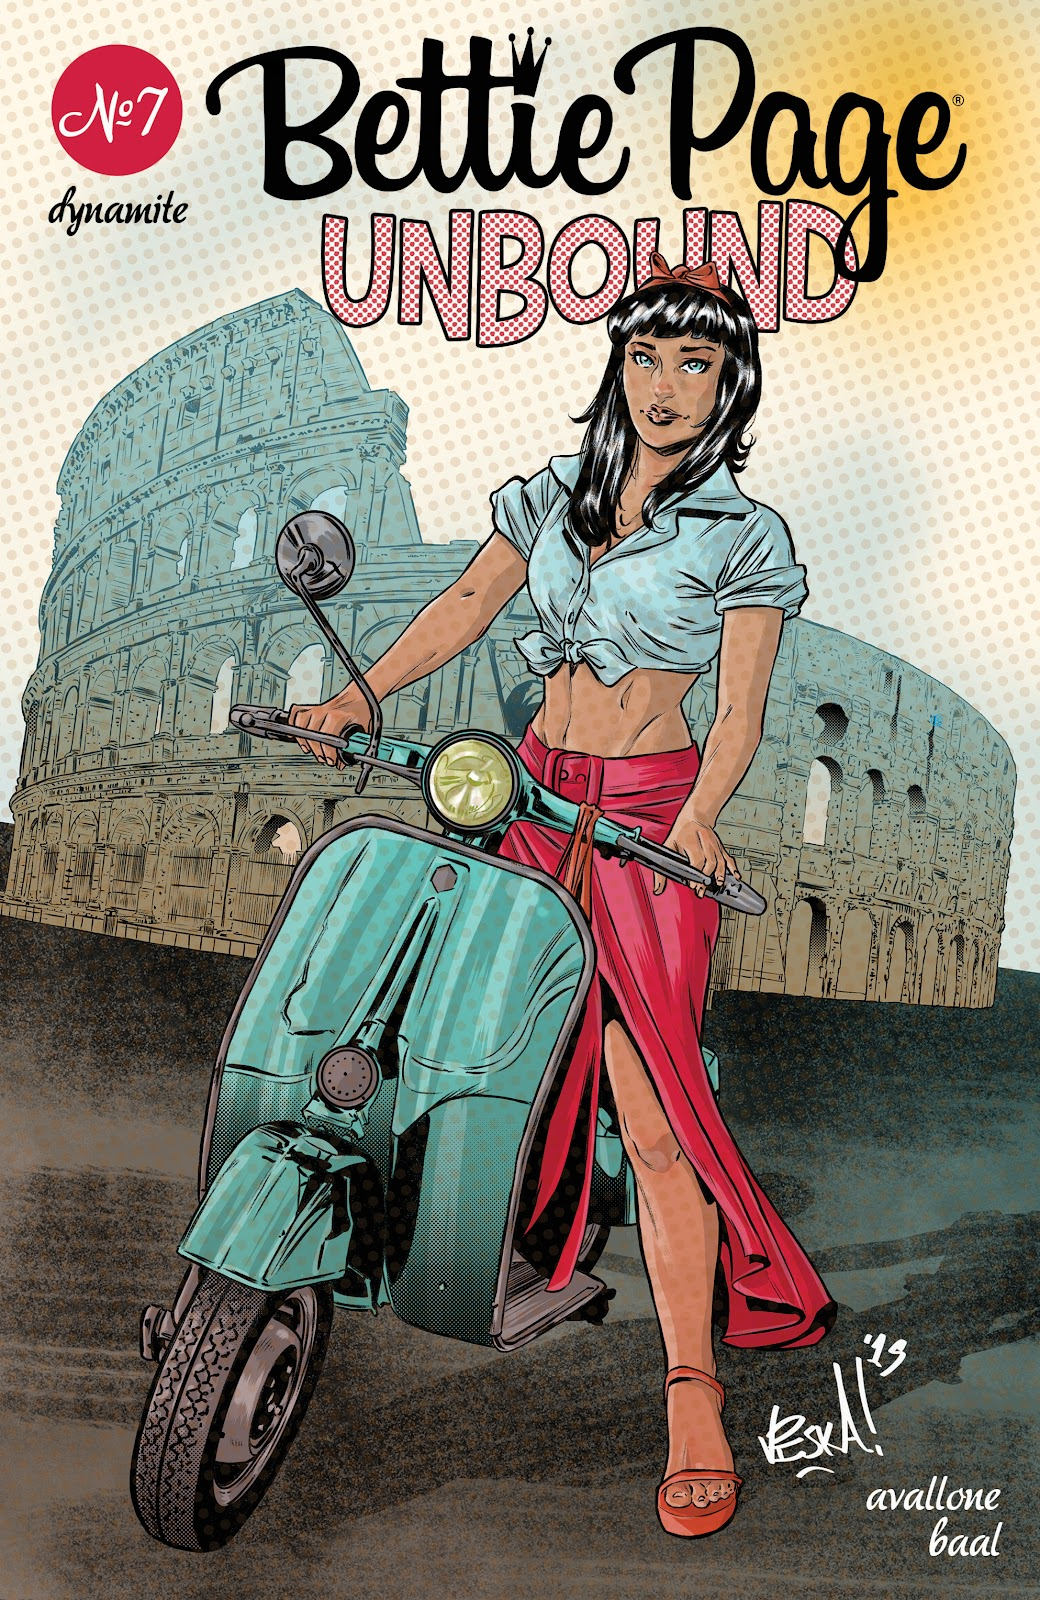 Read online Bettie Page: Unbound comic -  Issue #7 - 4